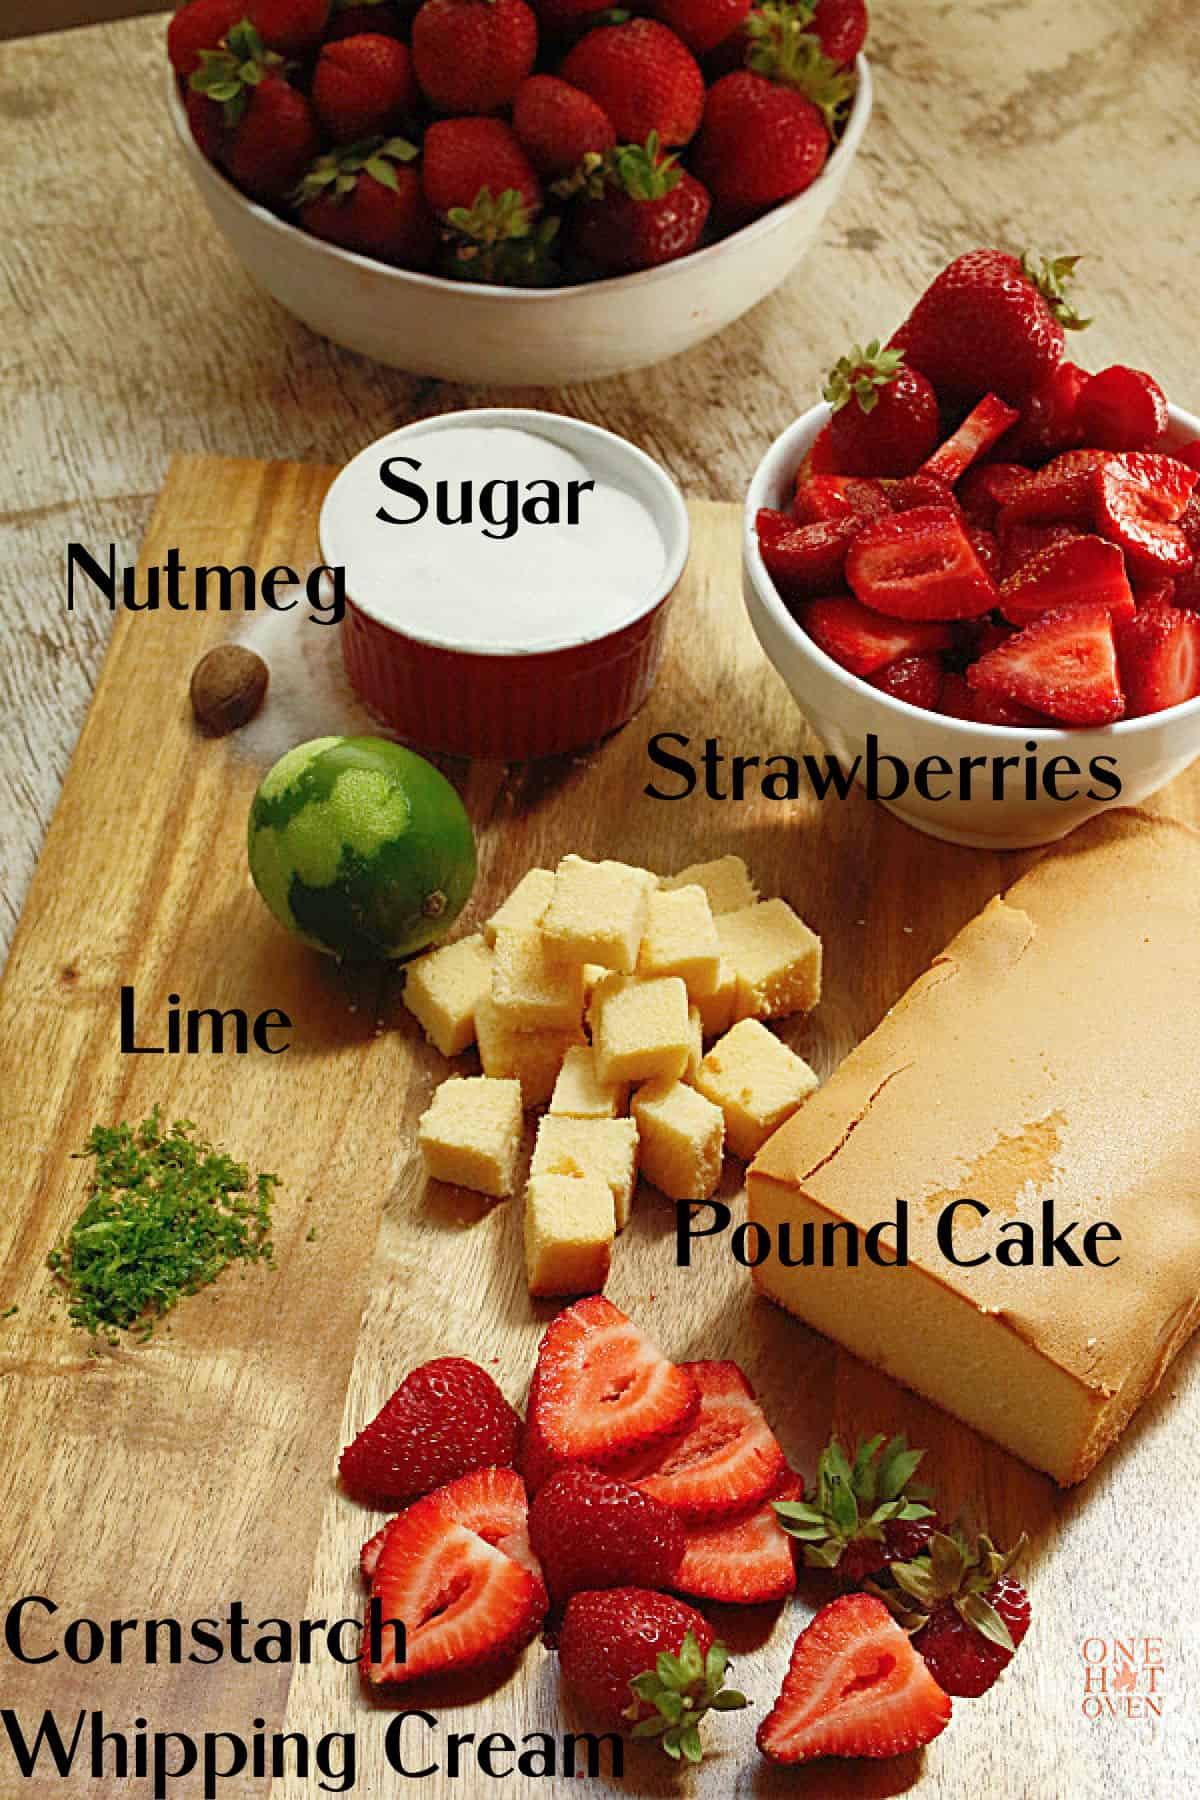 Strawberries, pound cake, lime and sugar on a brown cutting board.